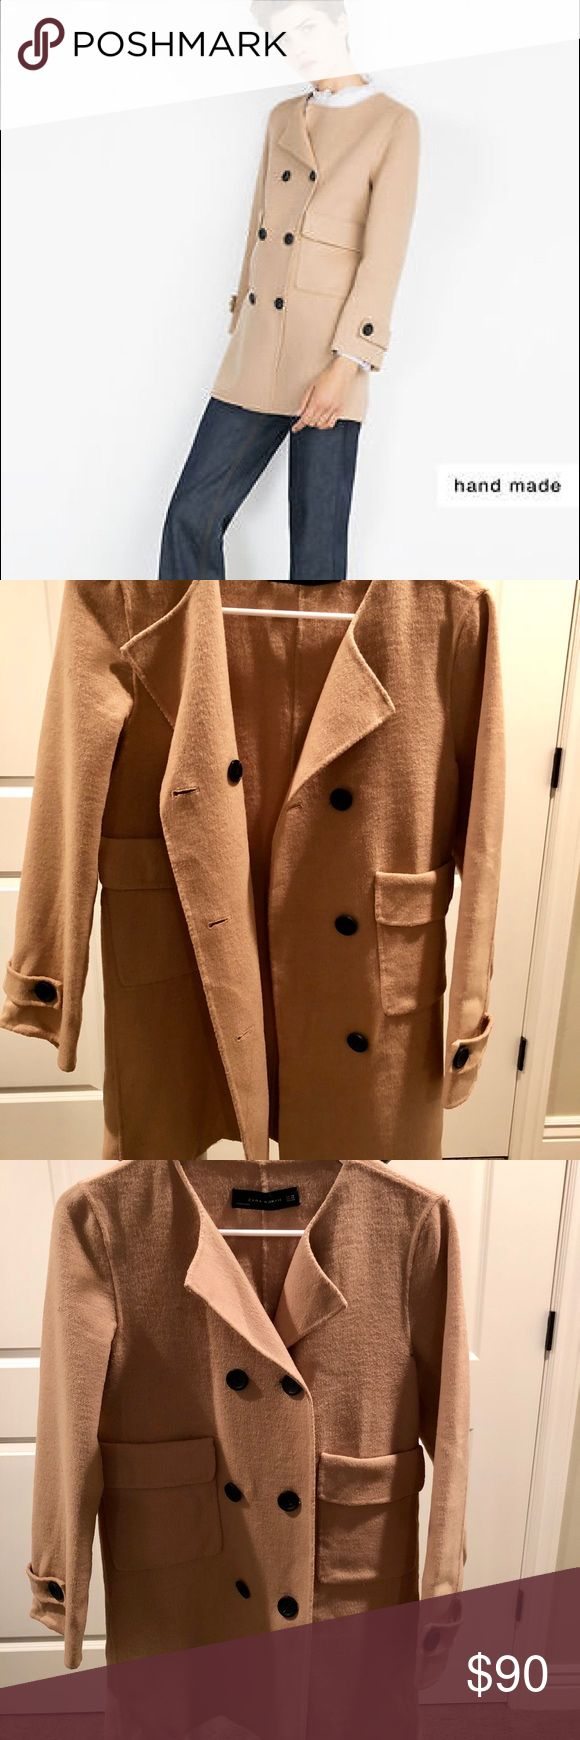 Zara Wool Hand Made Coat Excellent condition. Worn once. Soft wool. Size: XS Color: camel/beige   Smoke free home. No trades, please. Make an offer! Zara Jackets & Coats Blazers